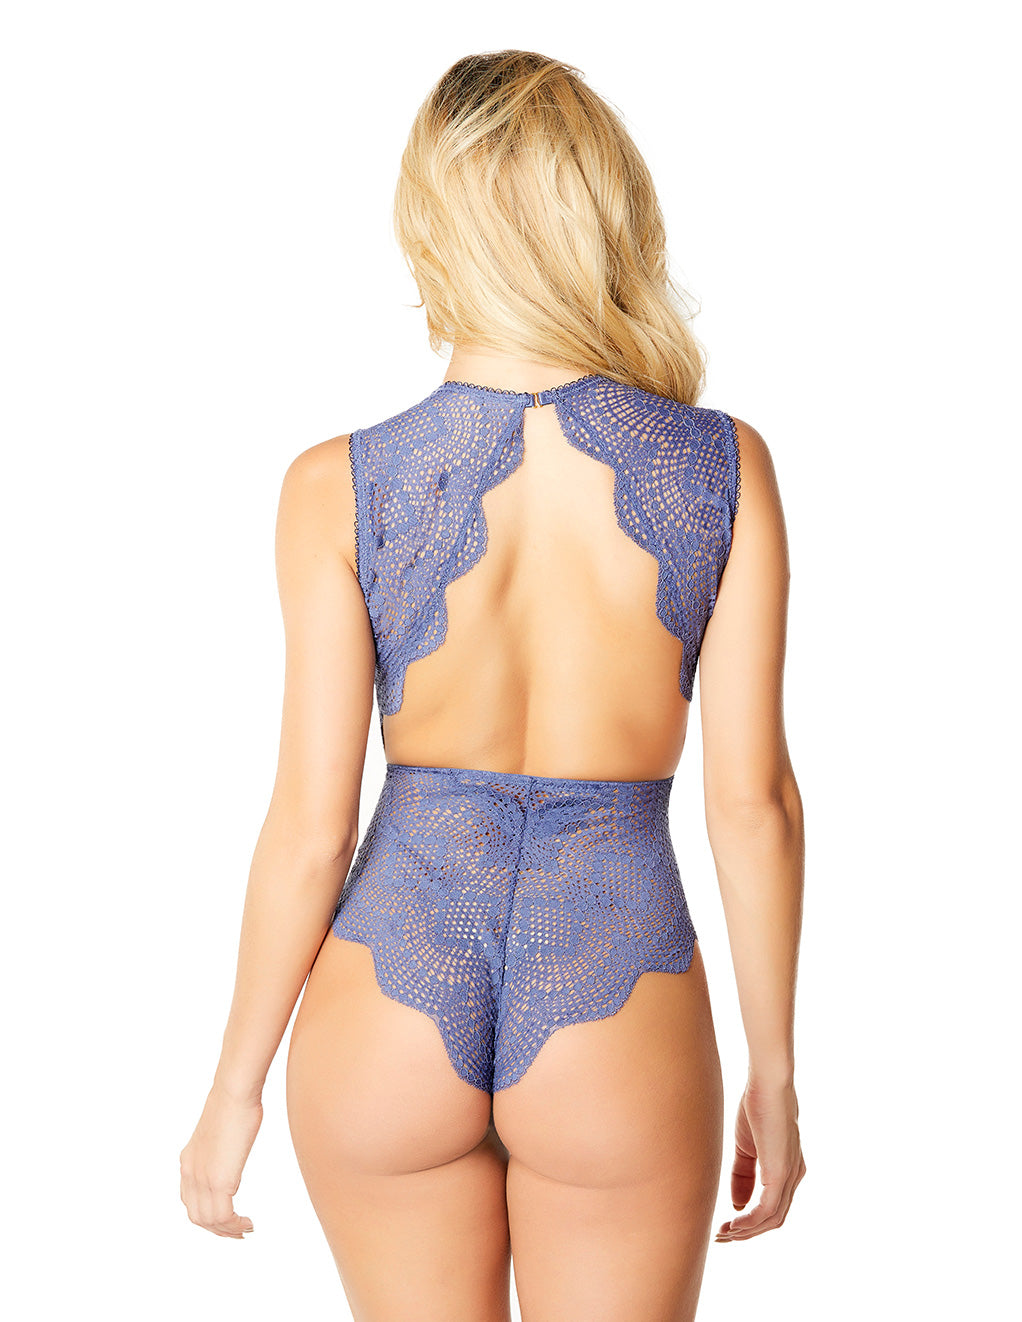 Oh La La Cheri Striped Lace Plunge Teddy Blue Back